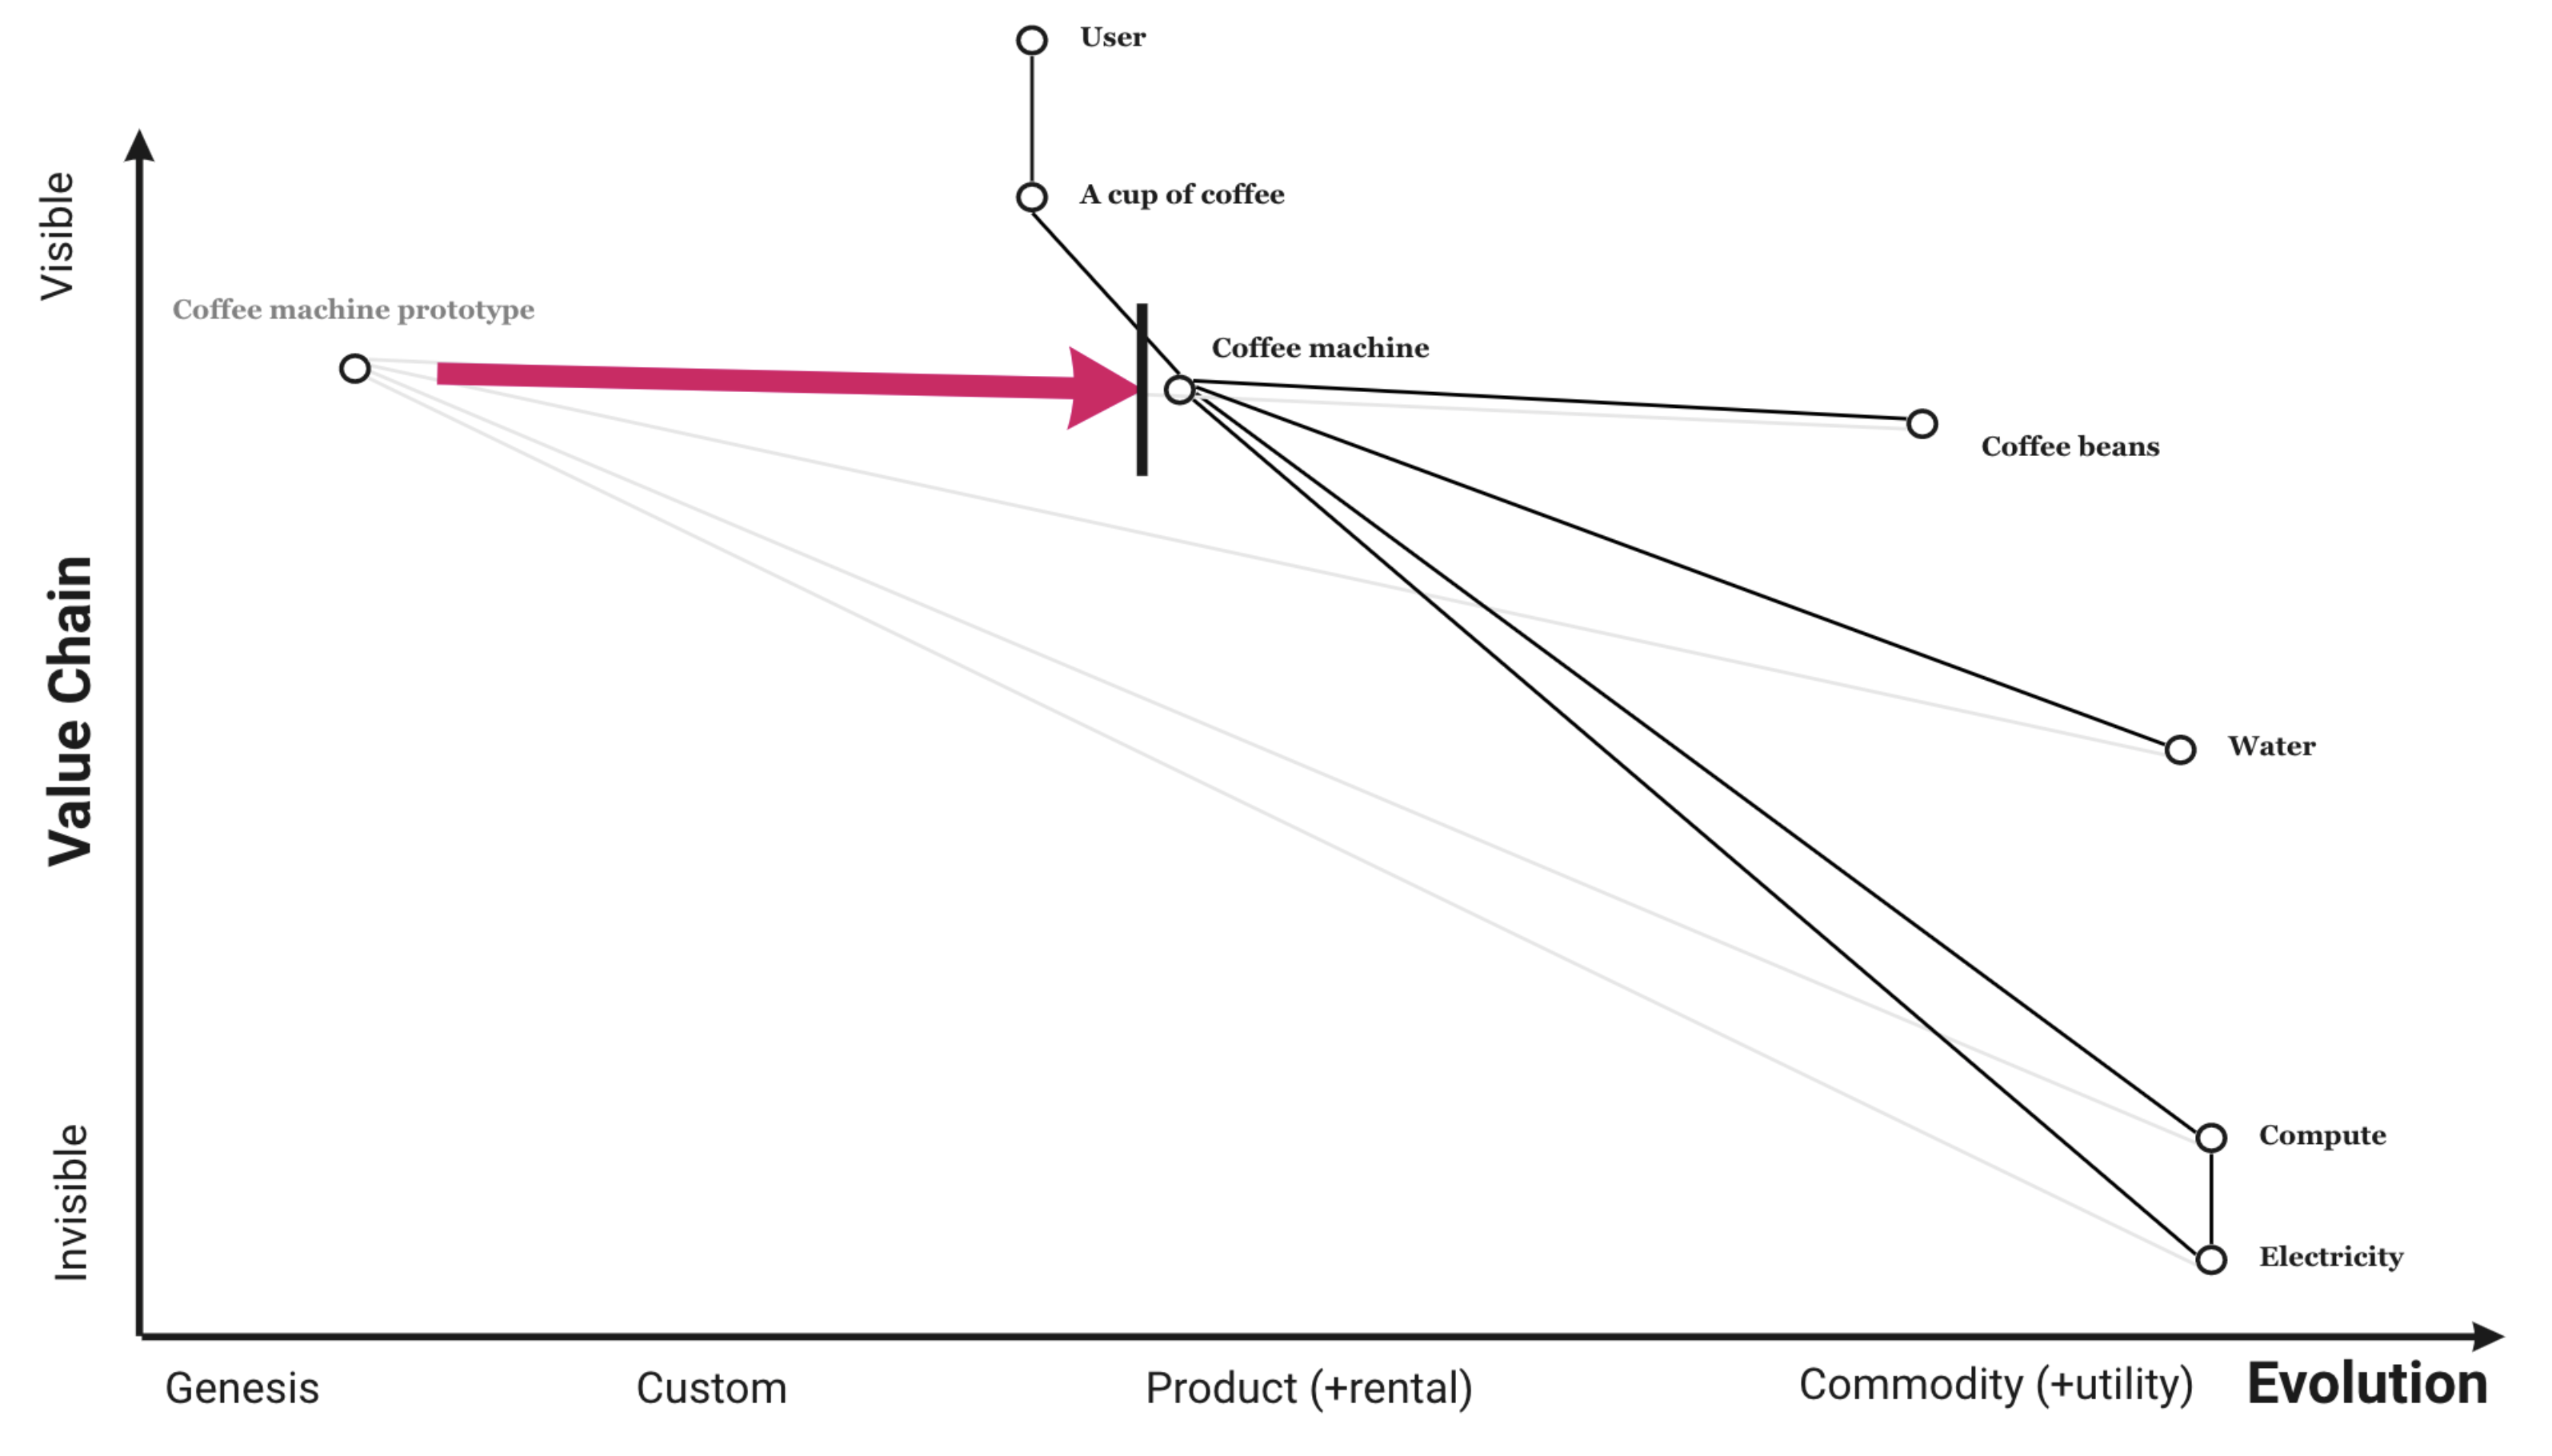 An automatic coffee machine started as a prototype, and evolved into a high-profit, low failure product that people could rent or buy. This is only possible from the things that came before it. This is the essence of what Wardley Maps help you see.